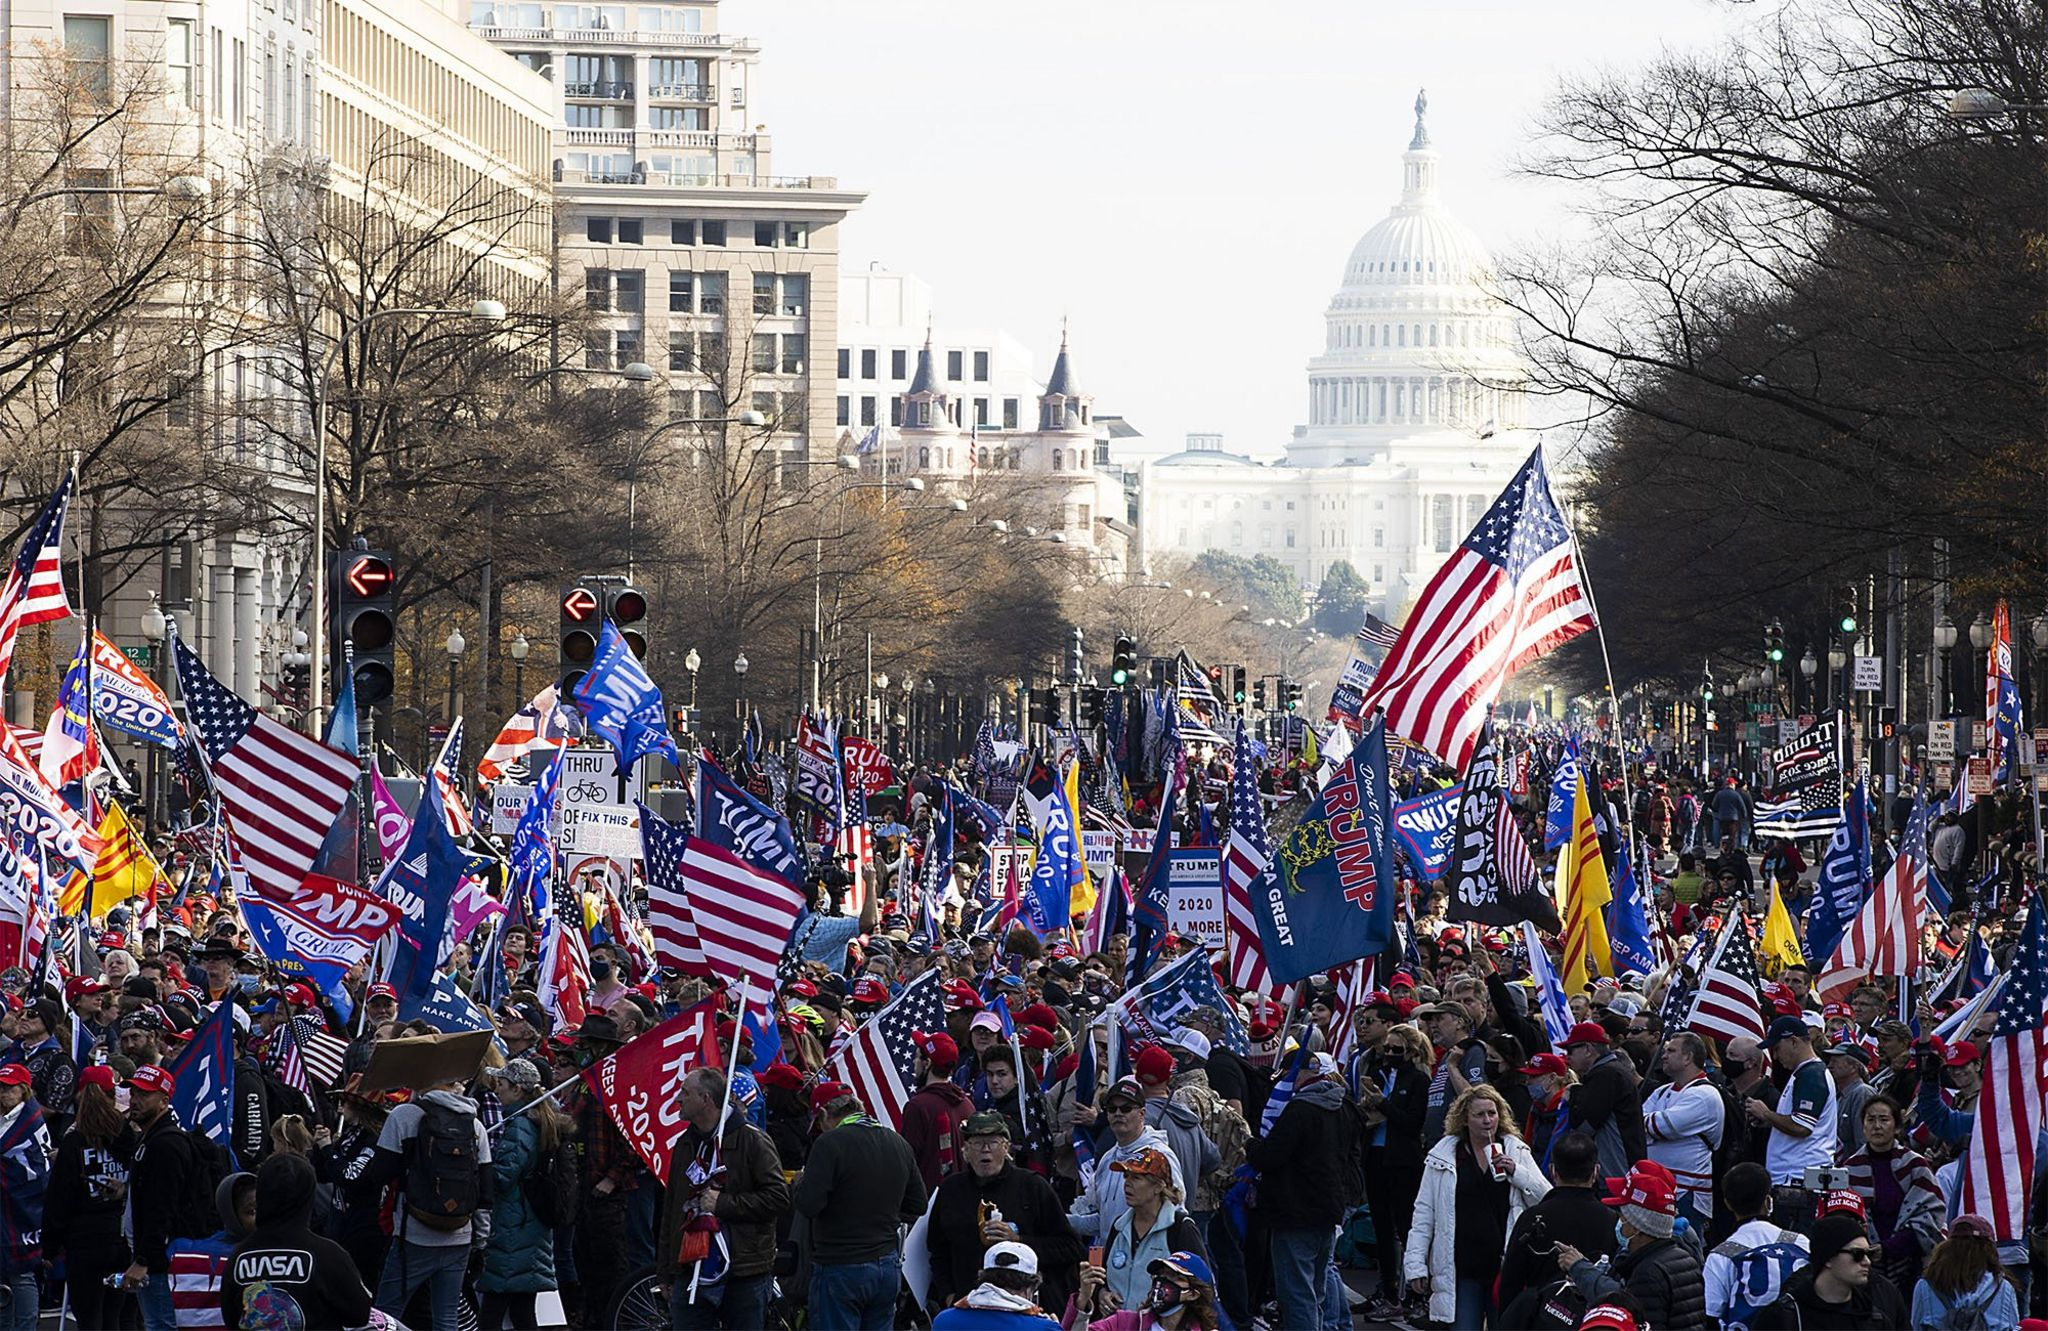 People gather in support of President Donald Trump, Washington, 12 December 2020